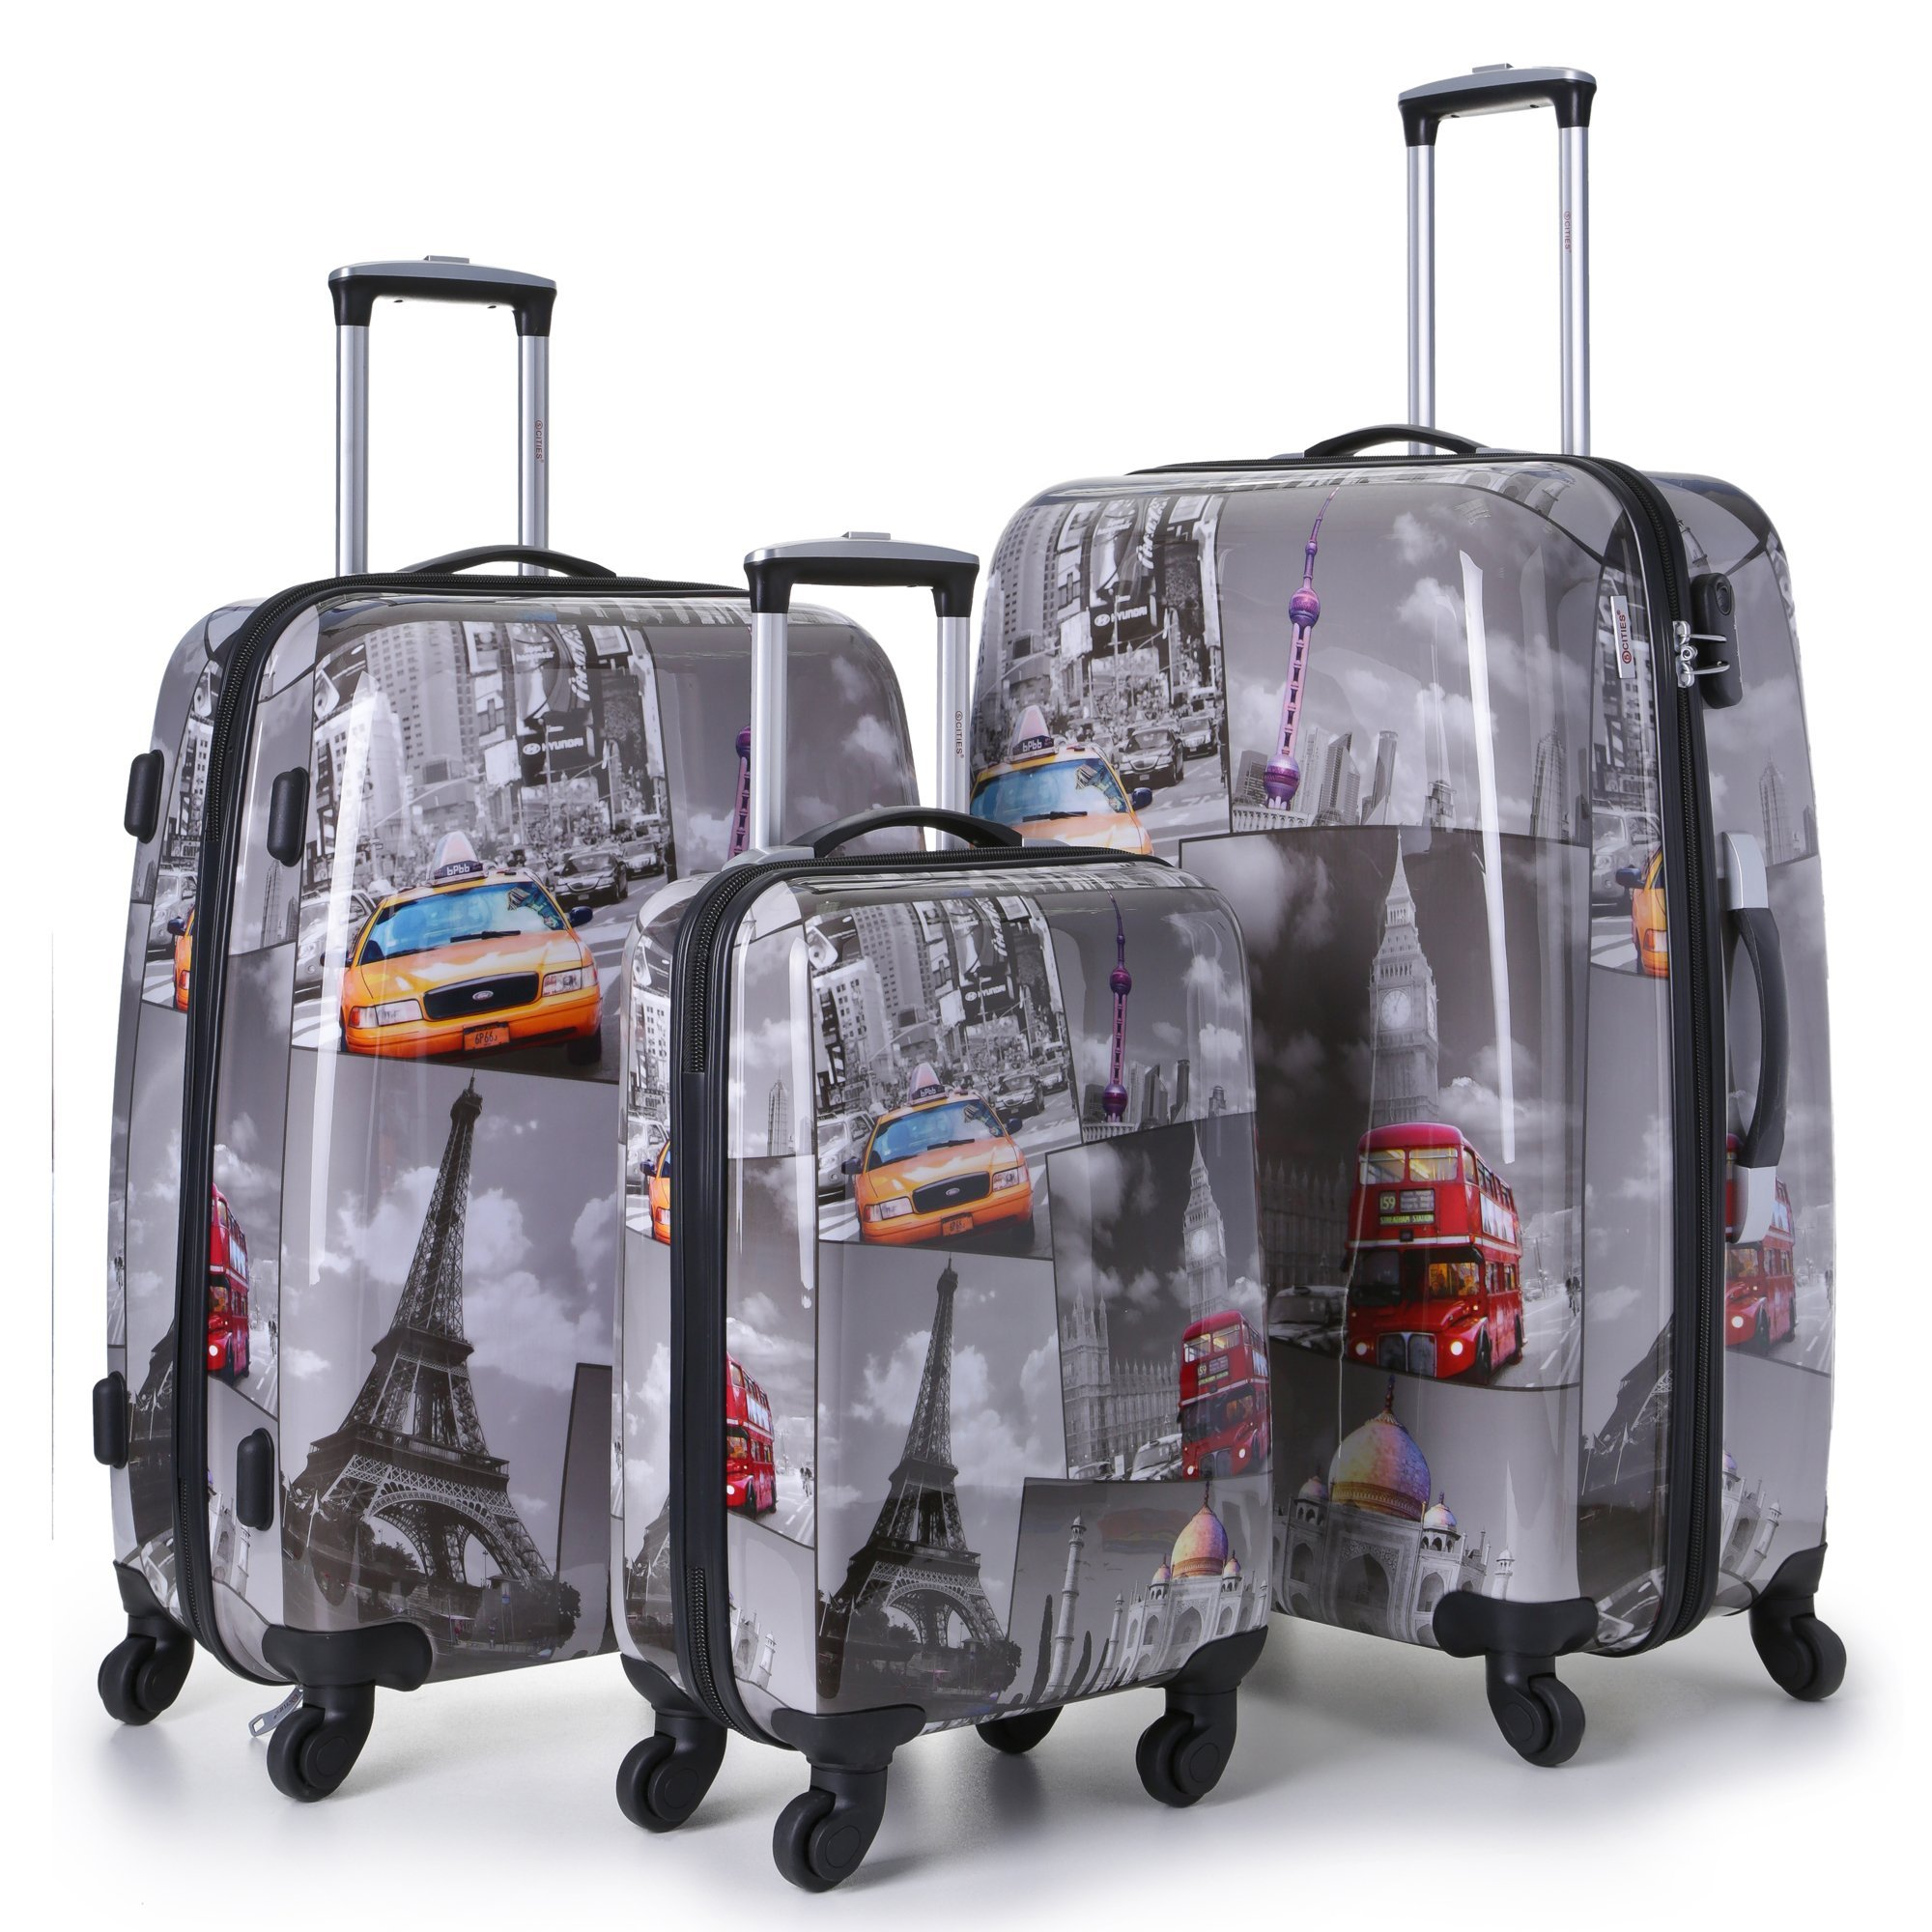 e862579c415d 5 Cities 3 PCS SET 21/25/29 Hardshell Luggage Suitcase 4 Wheel Spinner  Trolley Bag (Black/White)